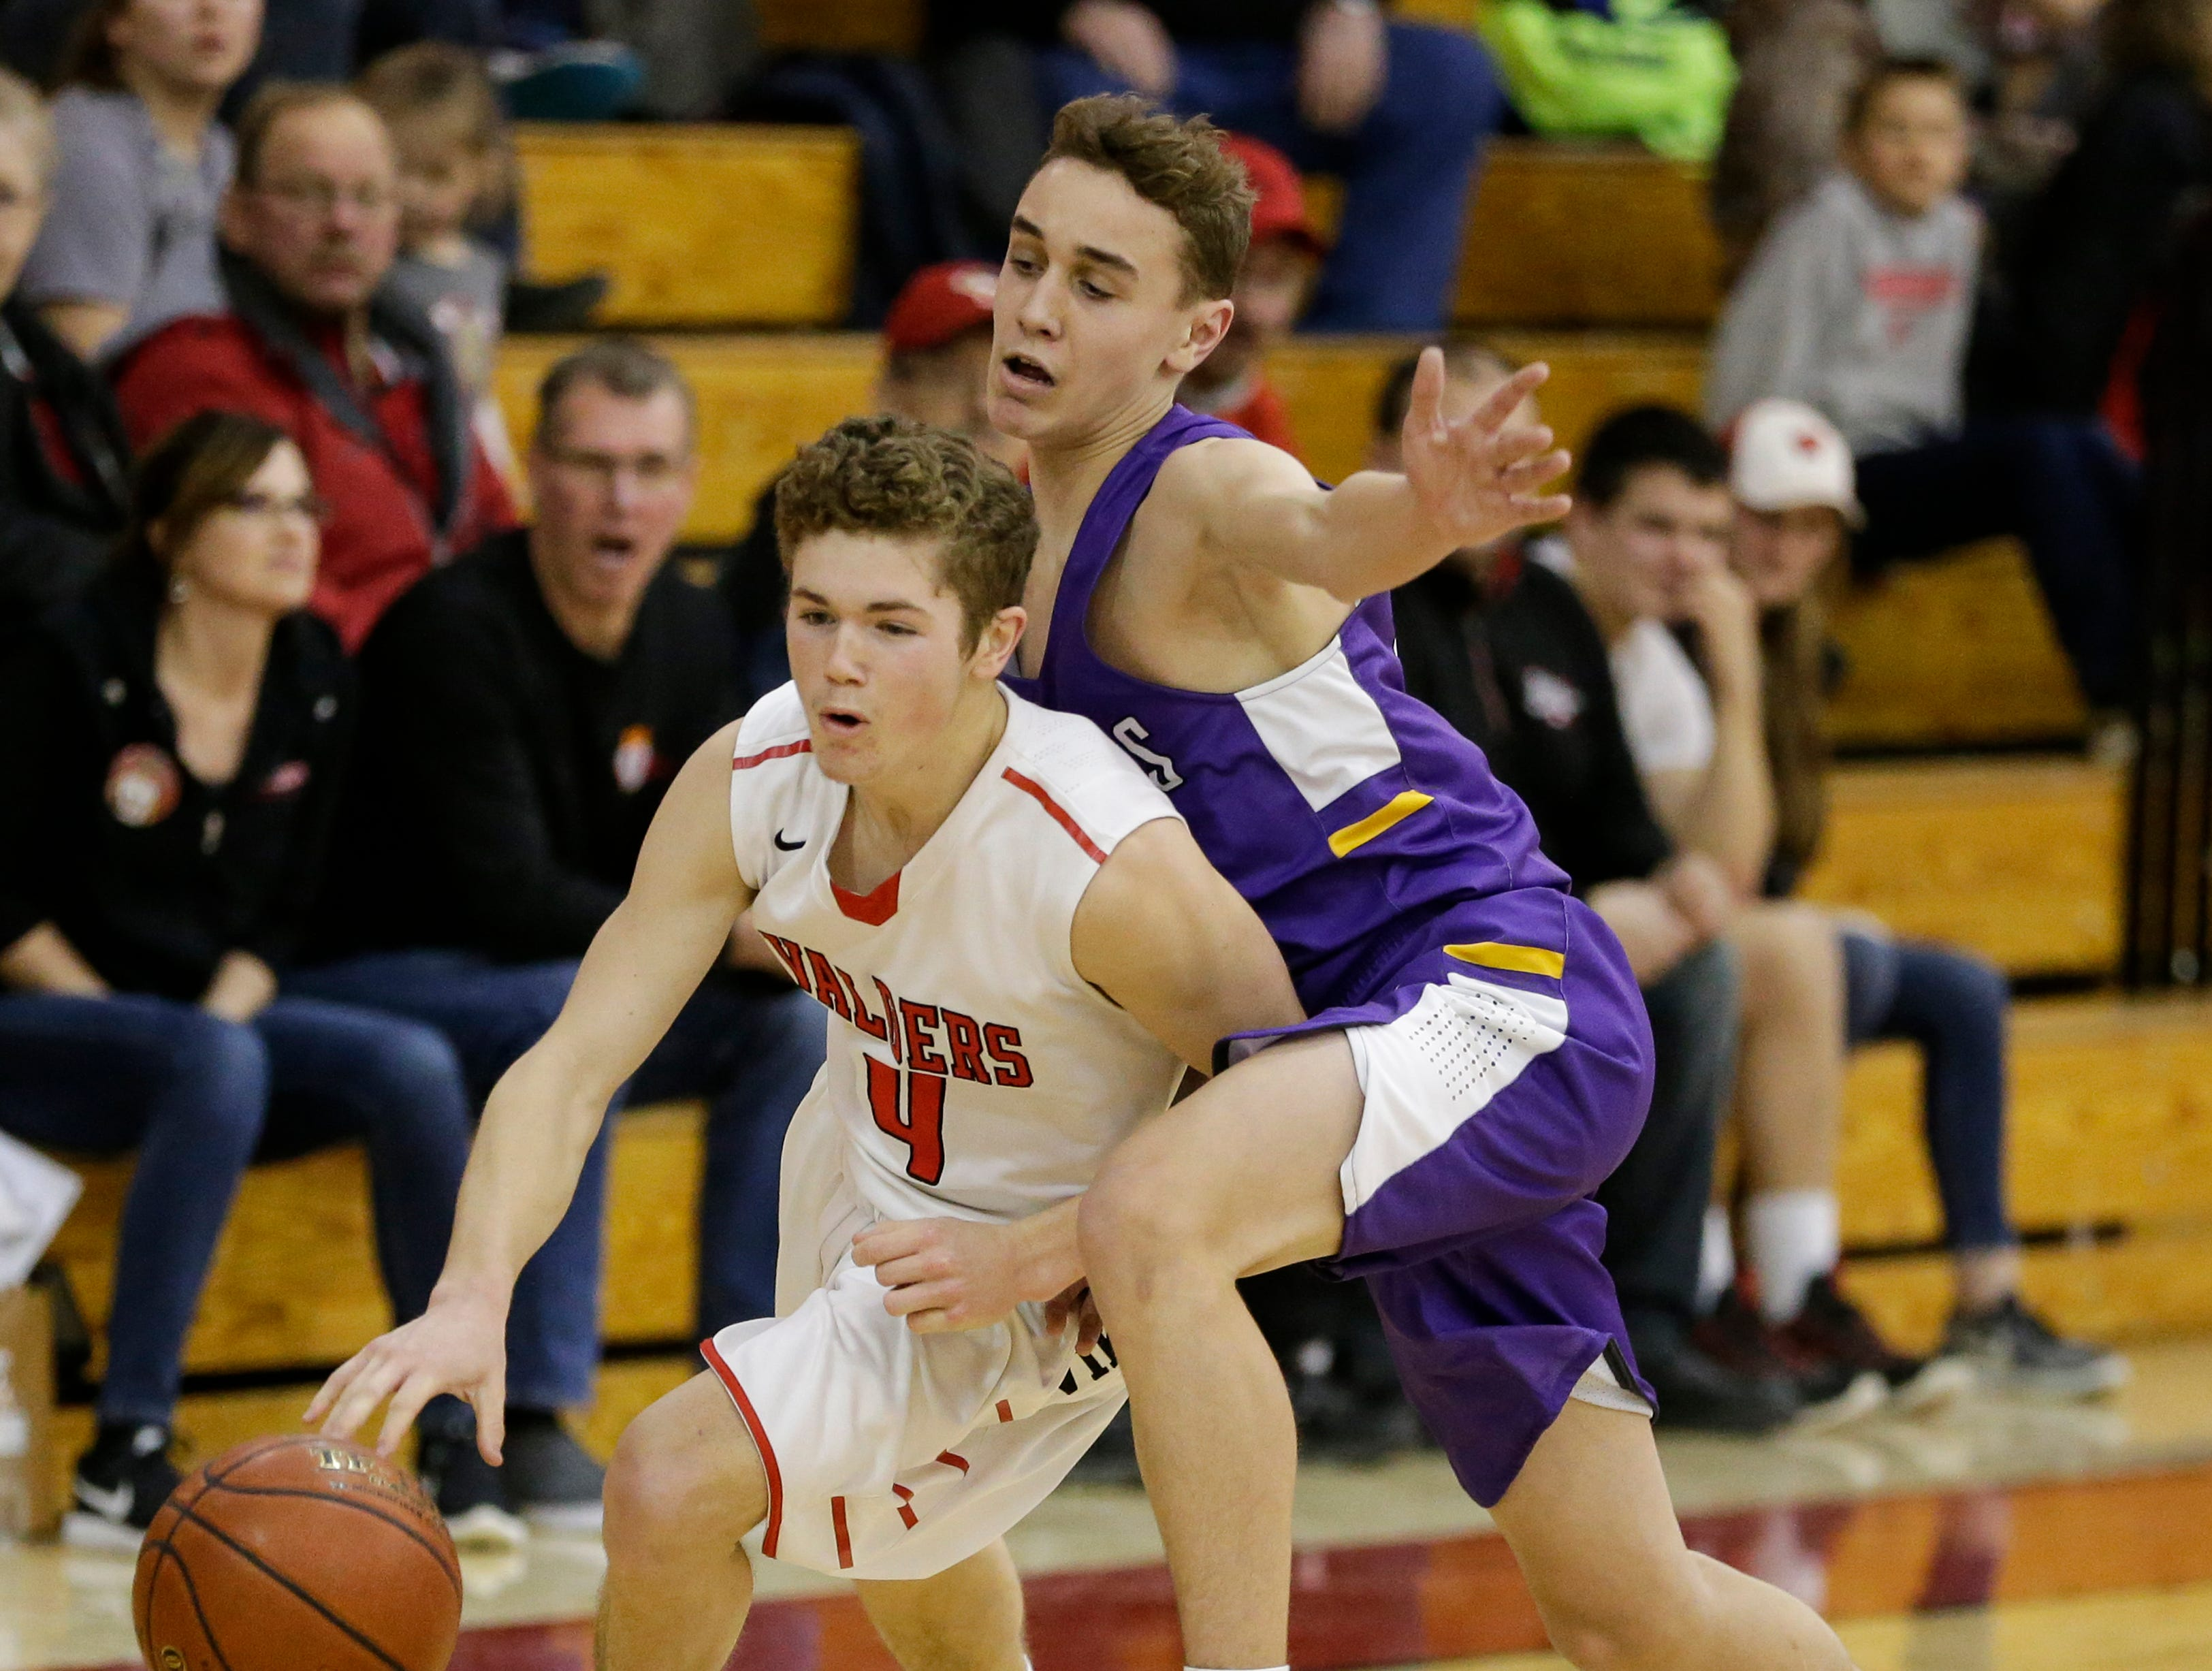 Valders' Nate Griepentrog (4) drives past Two Rivers' Cameron Daffner (3) at Valders High School Thursday, January 24, 2019, in Valders, Wis. Joshua Clark/USA TODAY NETWORK-Wisconsin